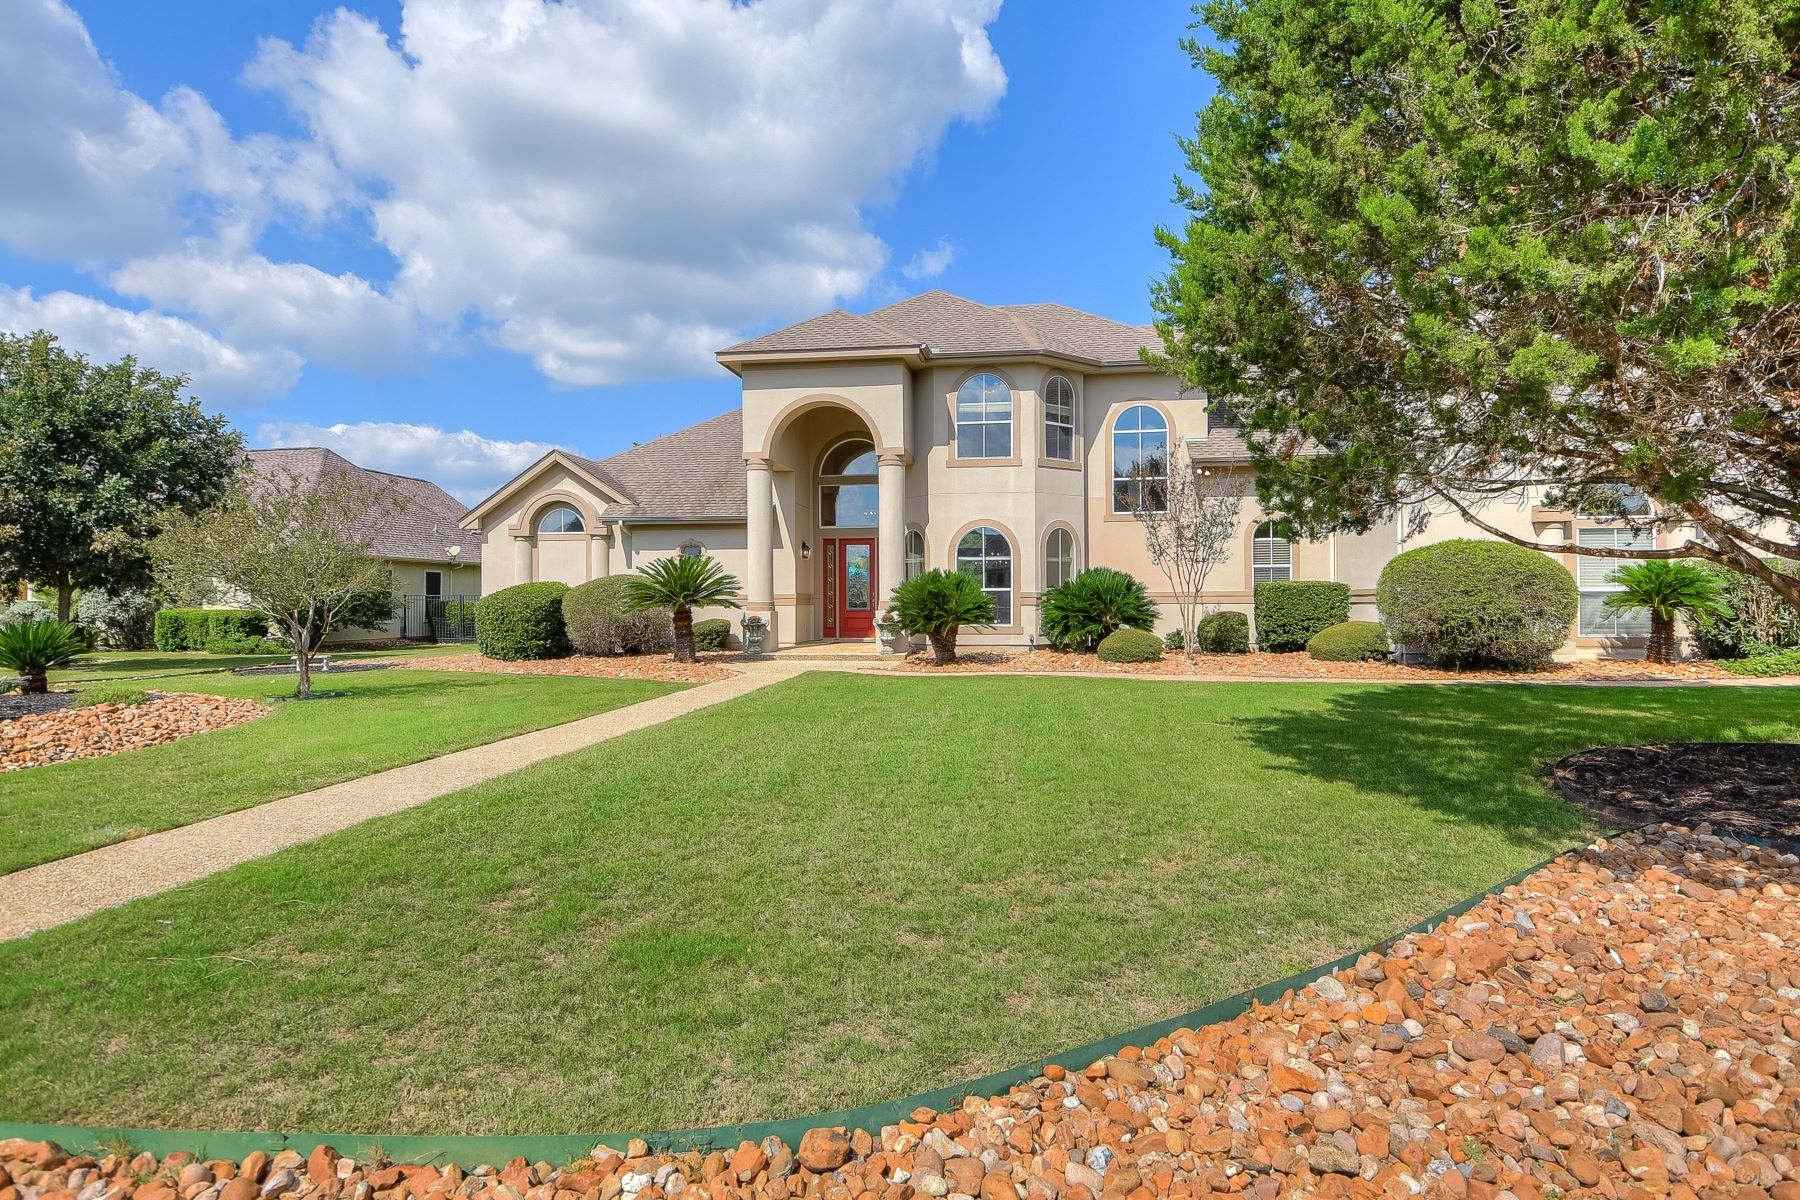 Single Family Homes for Active at Meticulously Maintained Property with Lush Oasis 31035 Keeneland Drive Fair Oaks Ranch, Texas 78015 United States